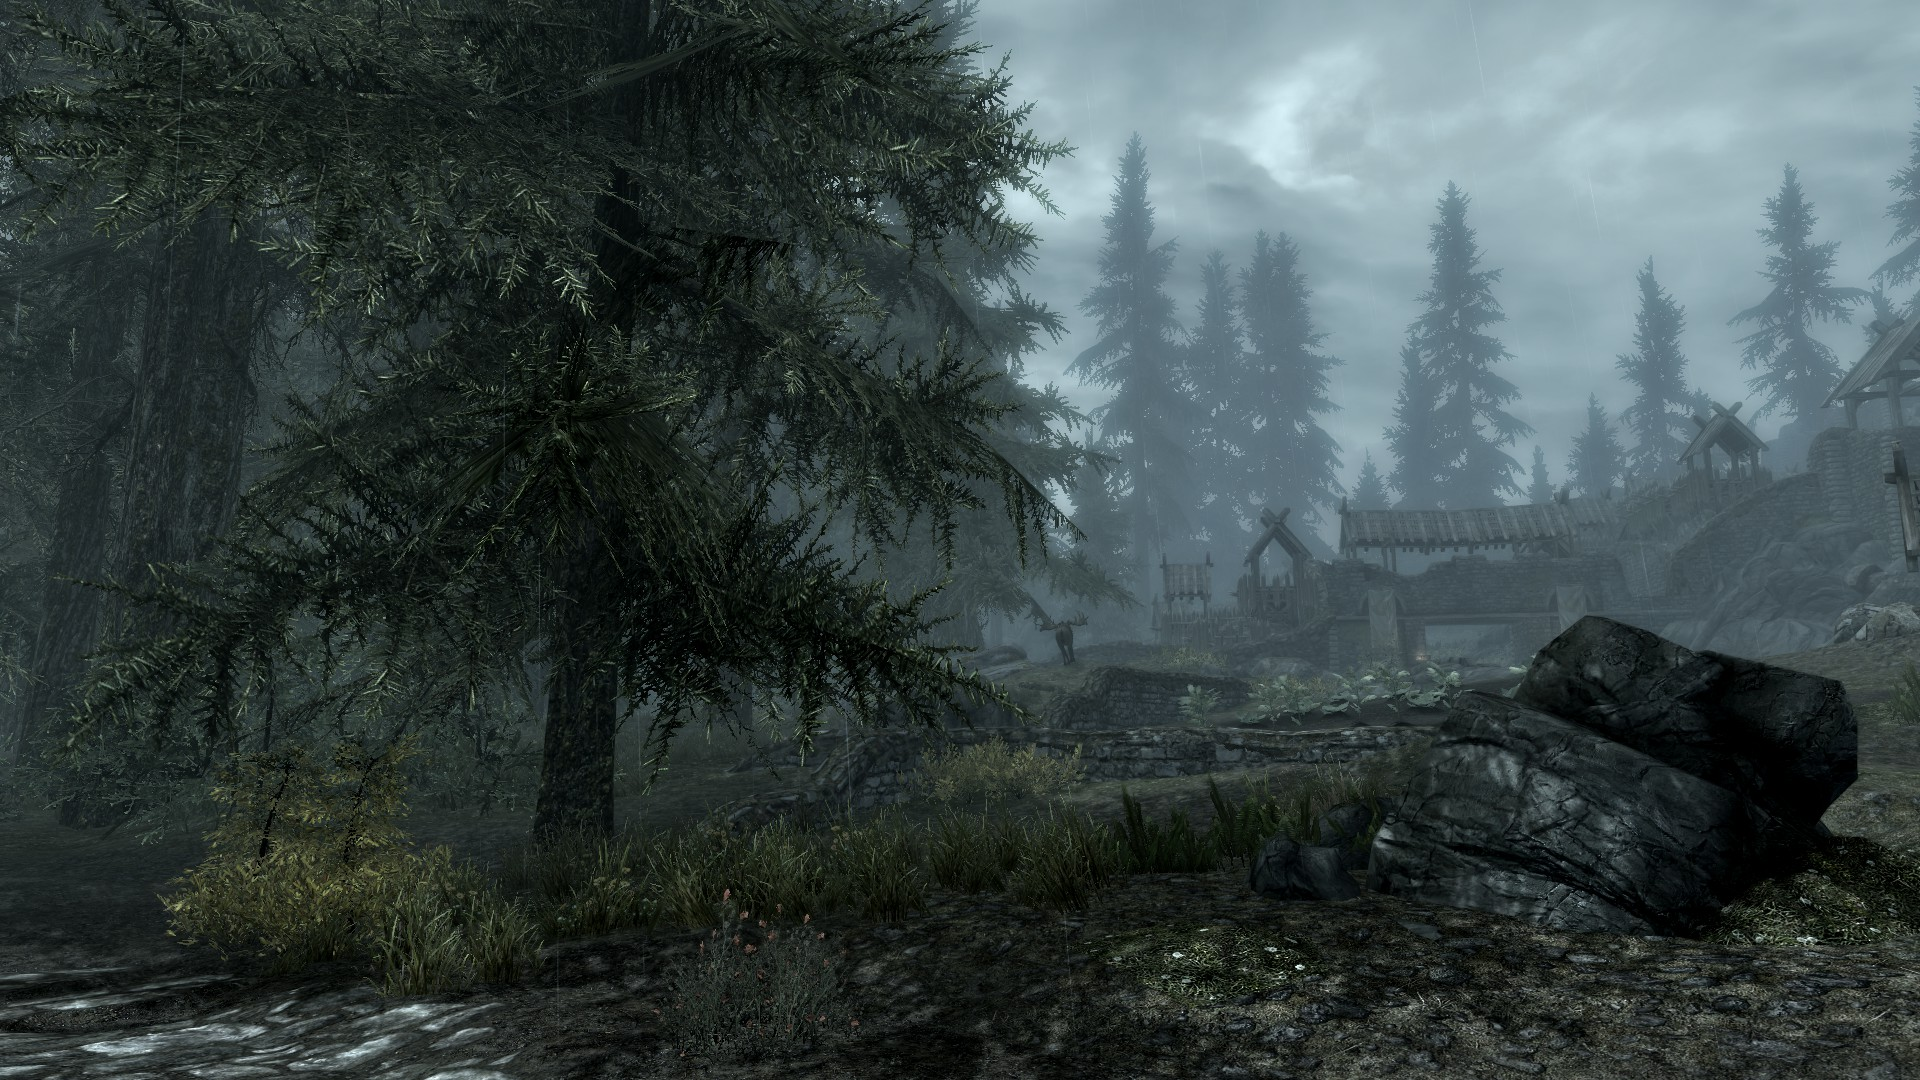 Thr Great Whiterun Hold Forest II